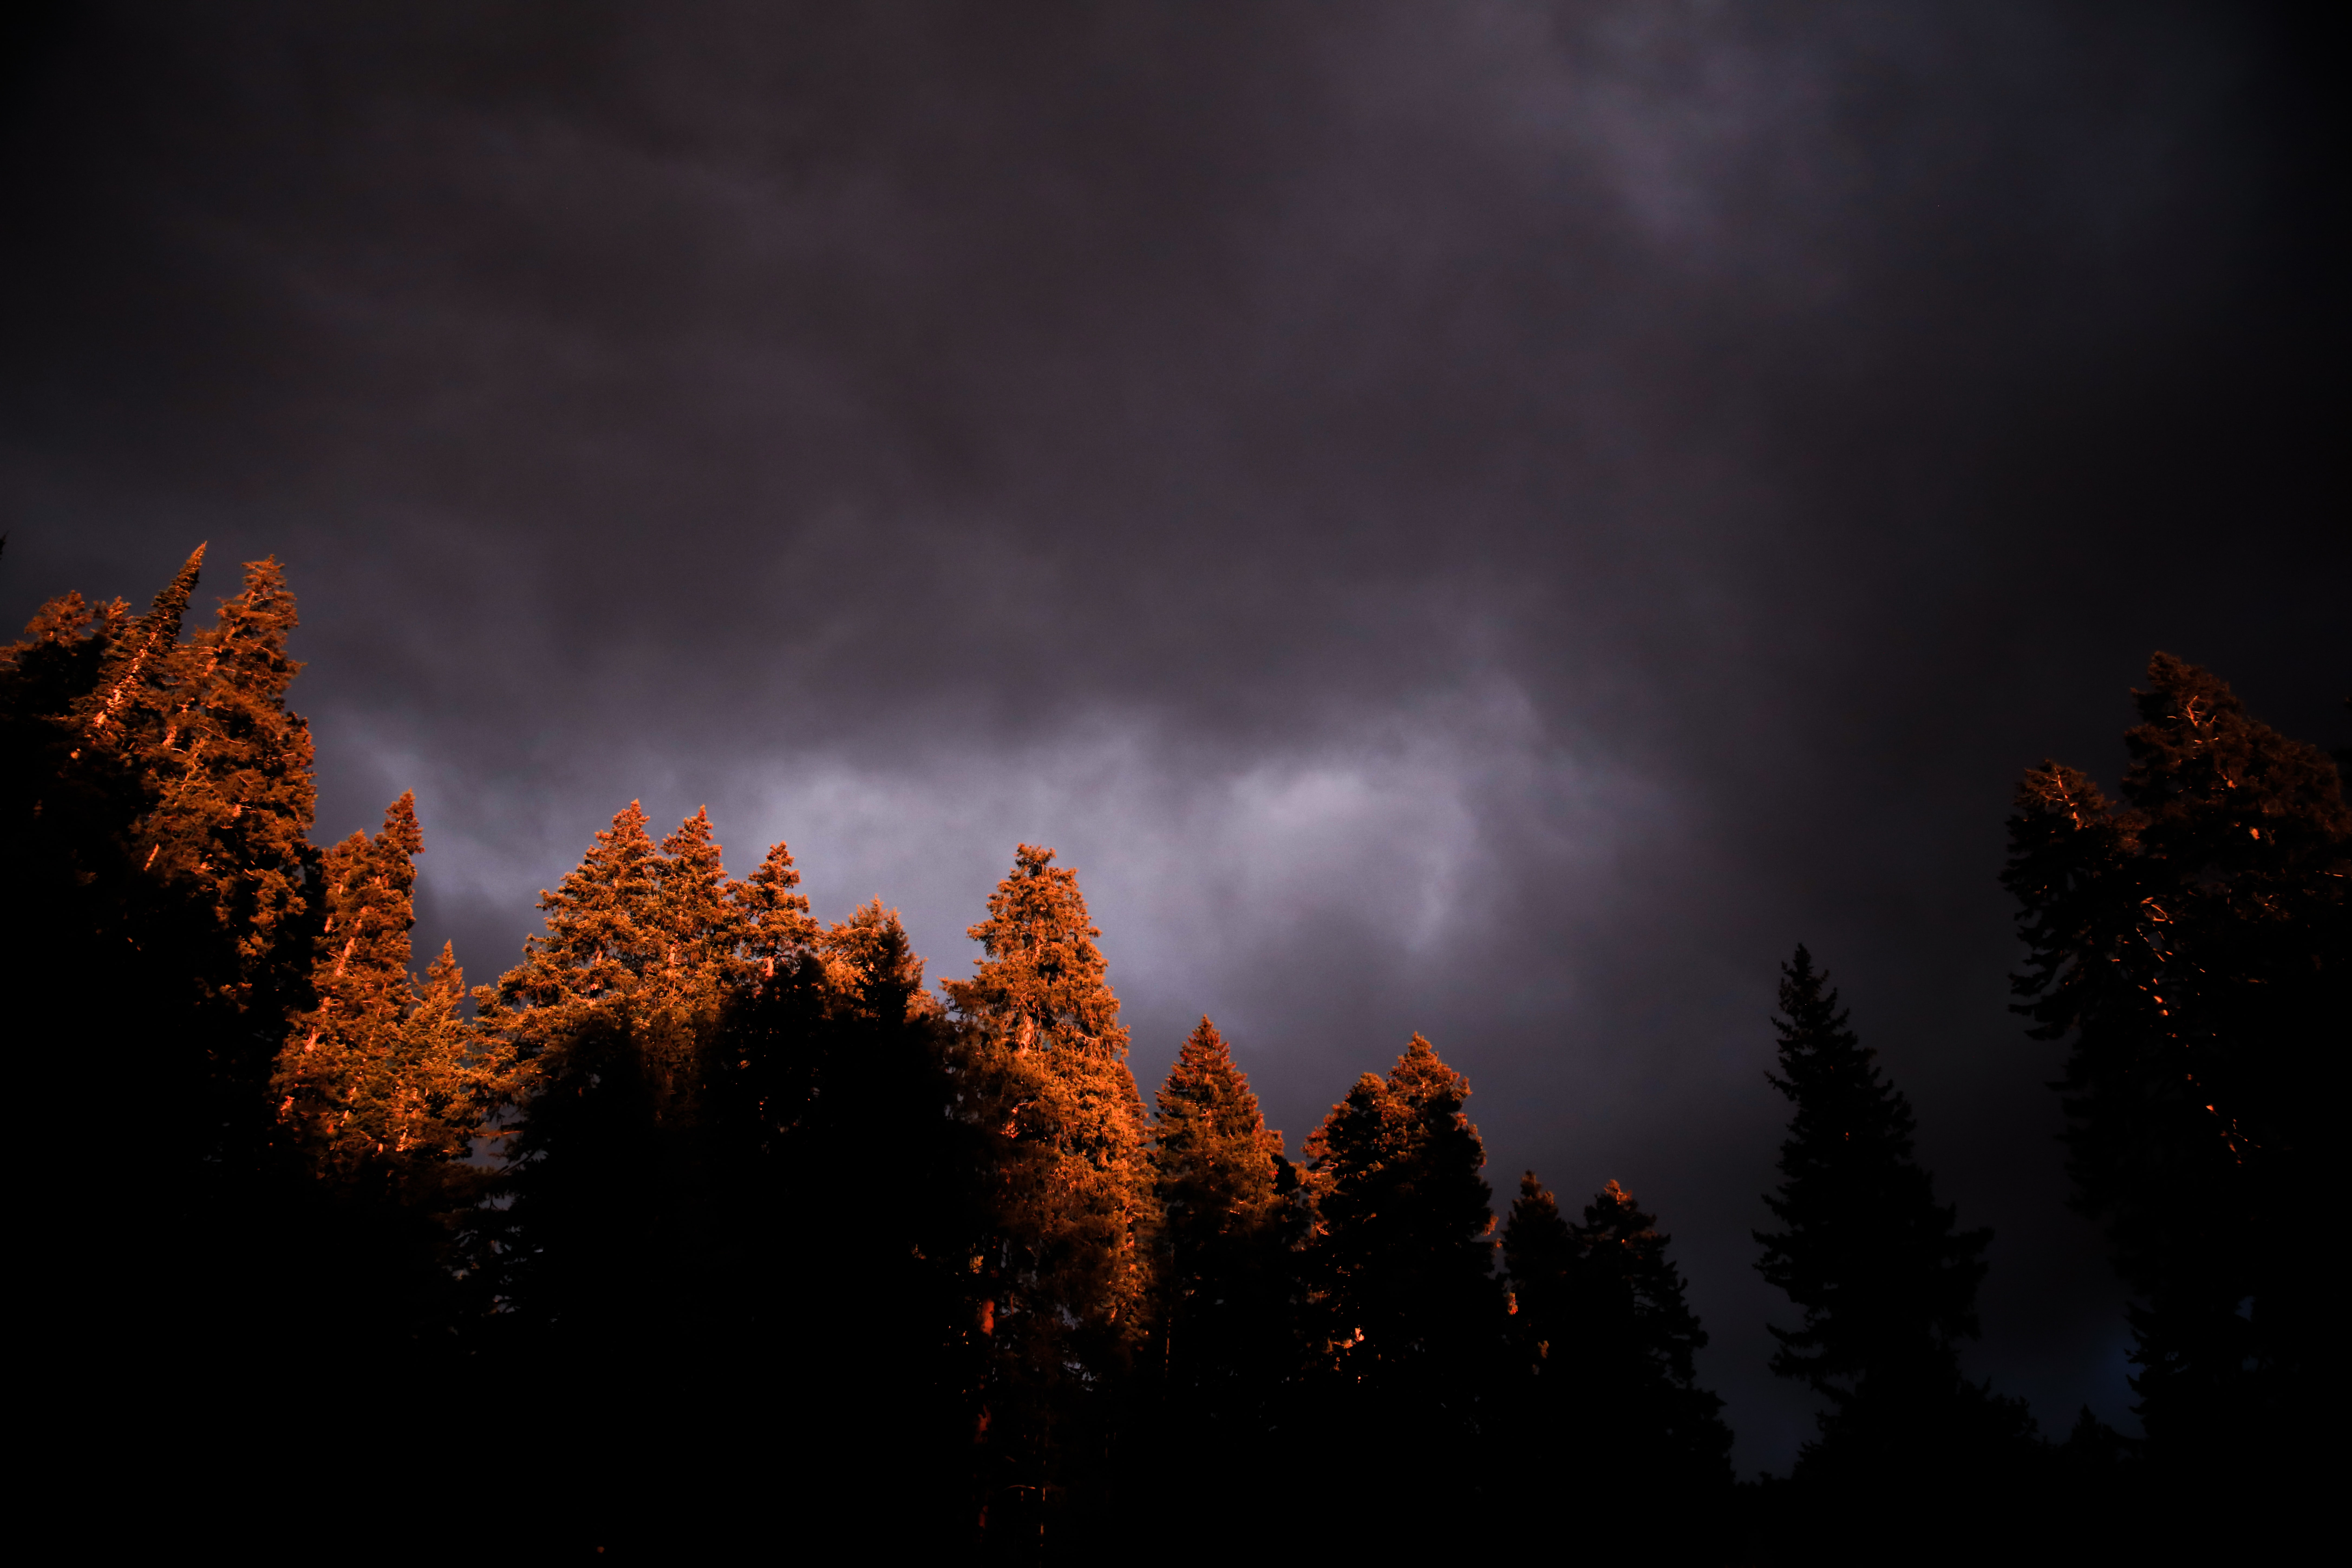 trees under black clouds